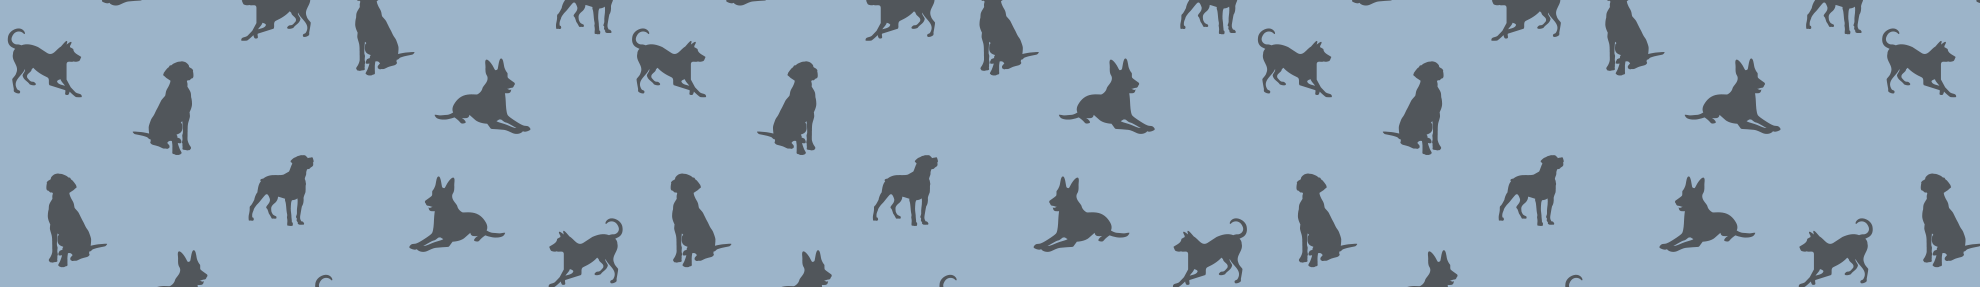 dog-is-good-header-primitives-by-kathy.png